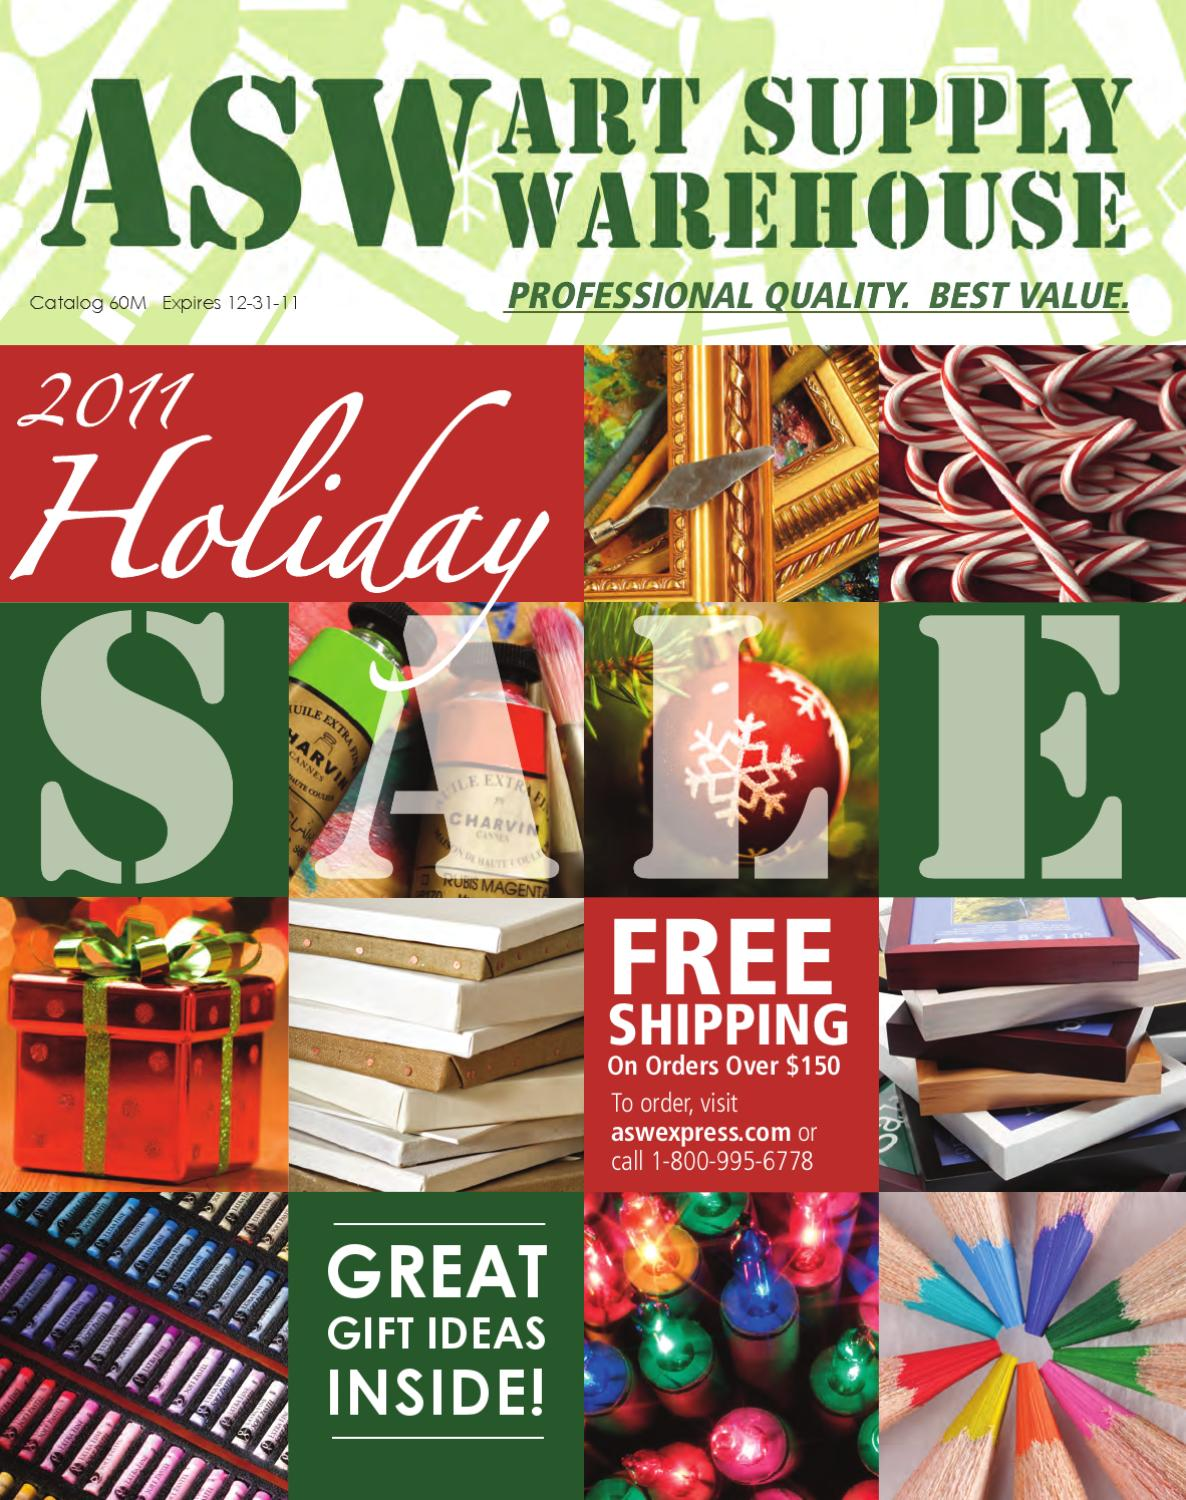 *Additional 20% off the latest advertised price with $60 or more purchase of products at regular price (before taxes and shipping fees). Offer valid in-store and online, December 6 and 7,